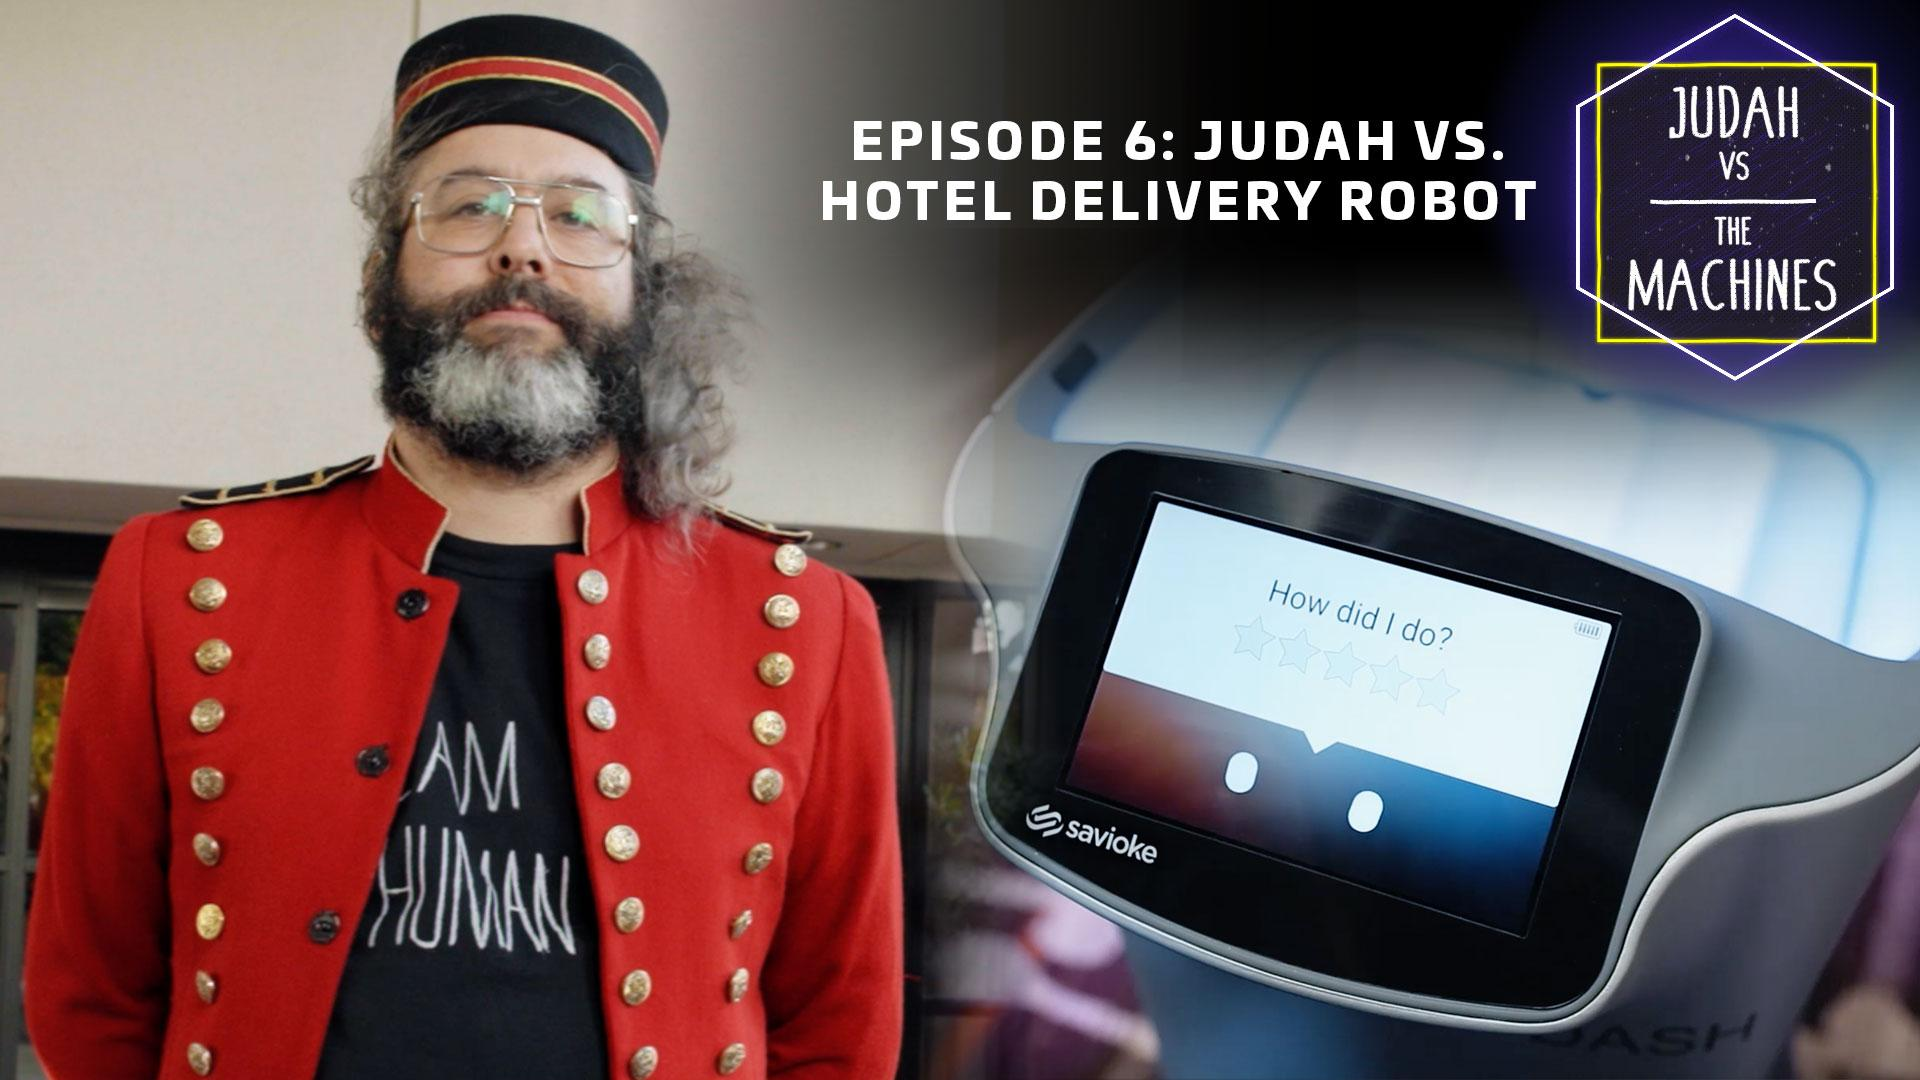 Judah vs hotel delivery robot